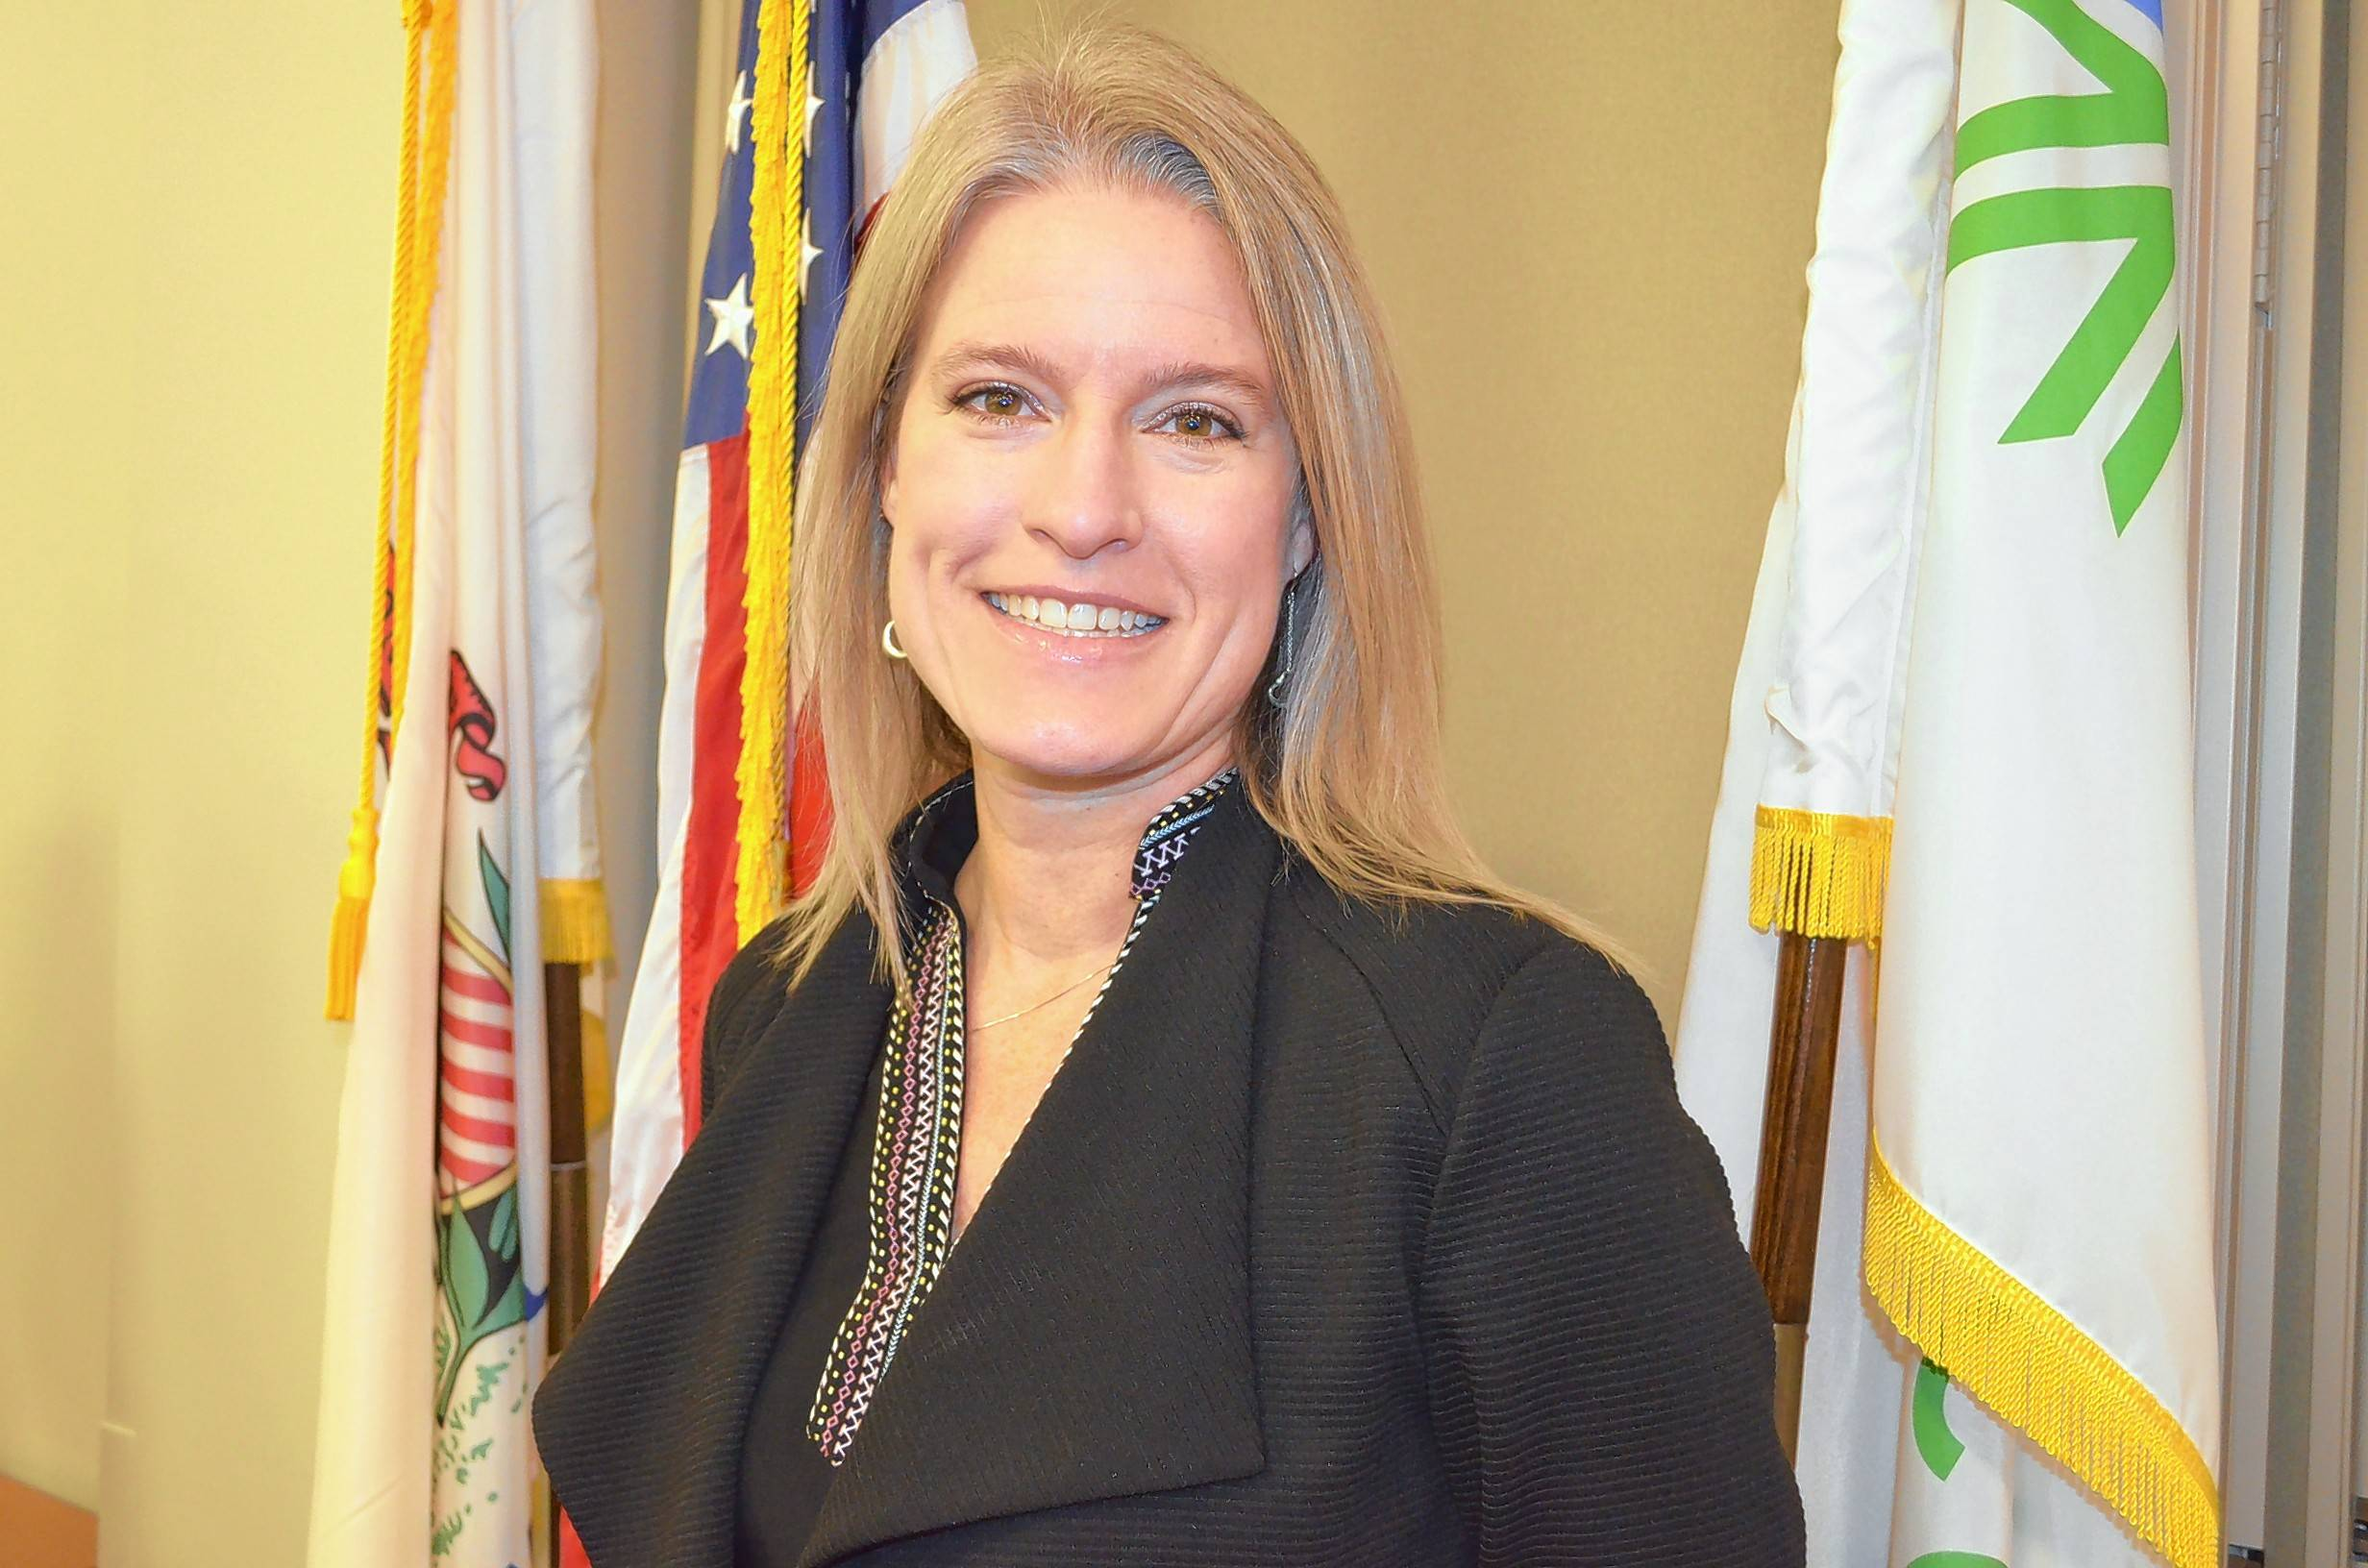 Lake County's deputy administrator poised to be named interim boss